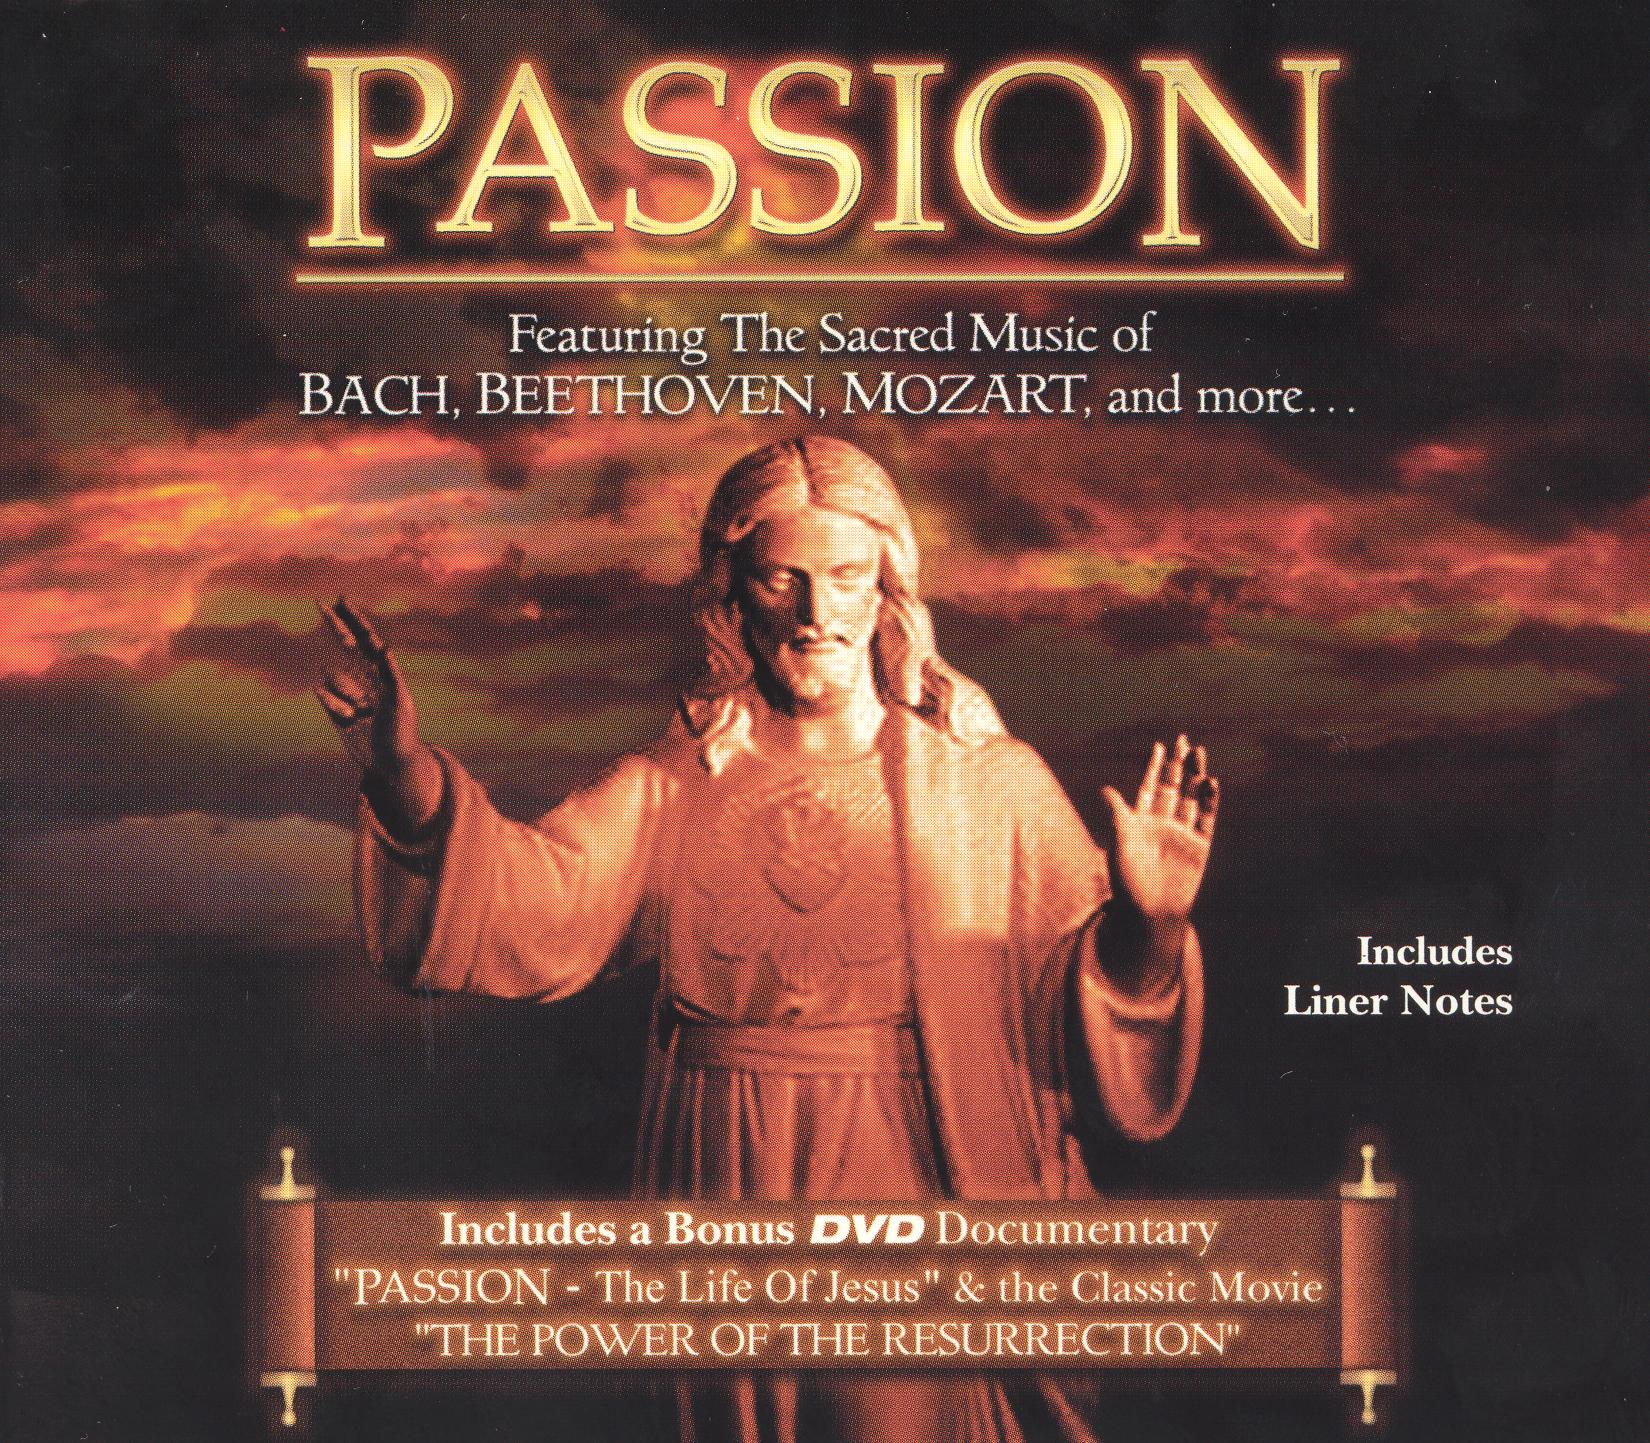 Passion: The Life of Jesus